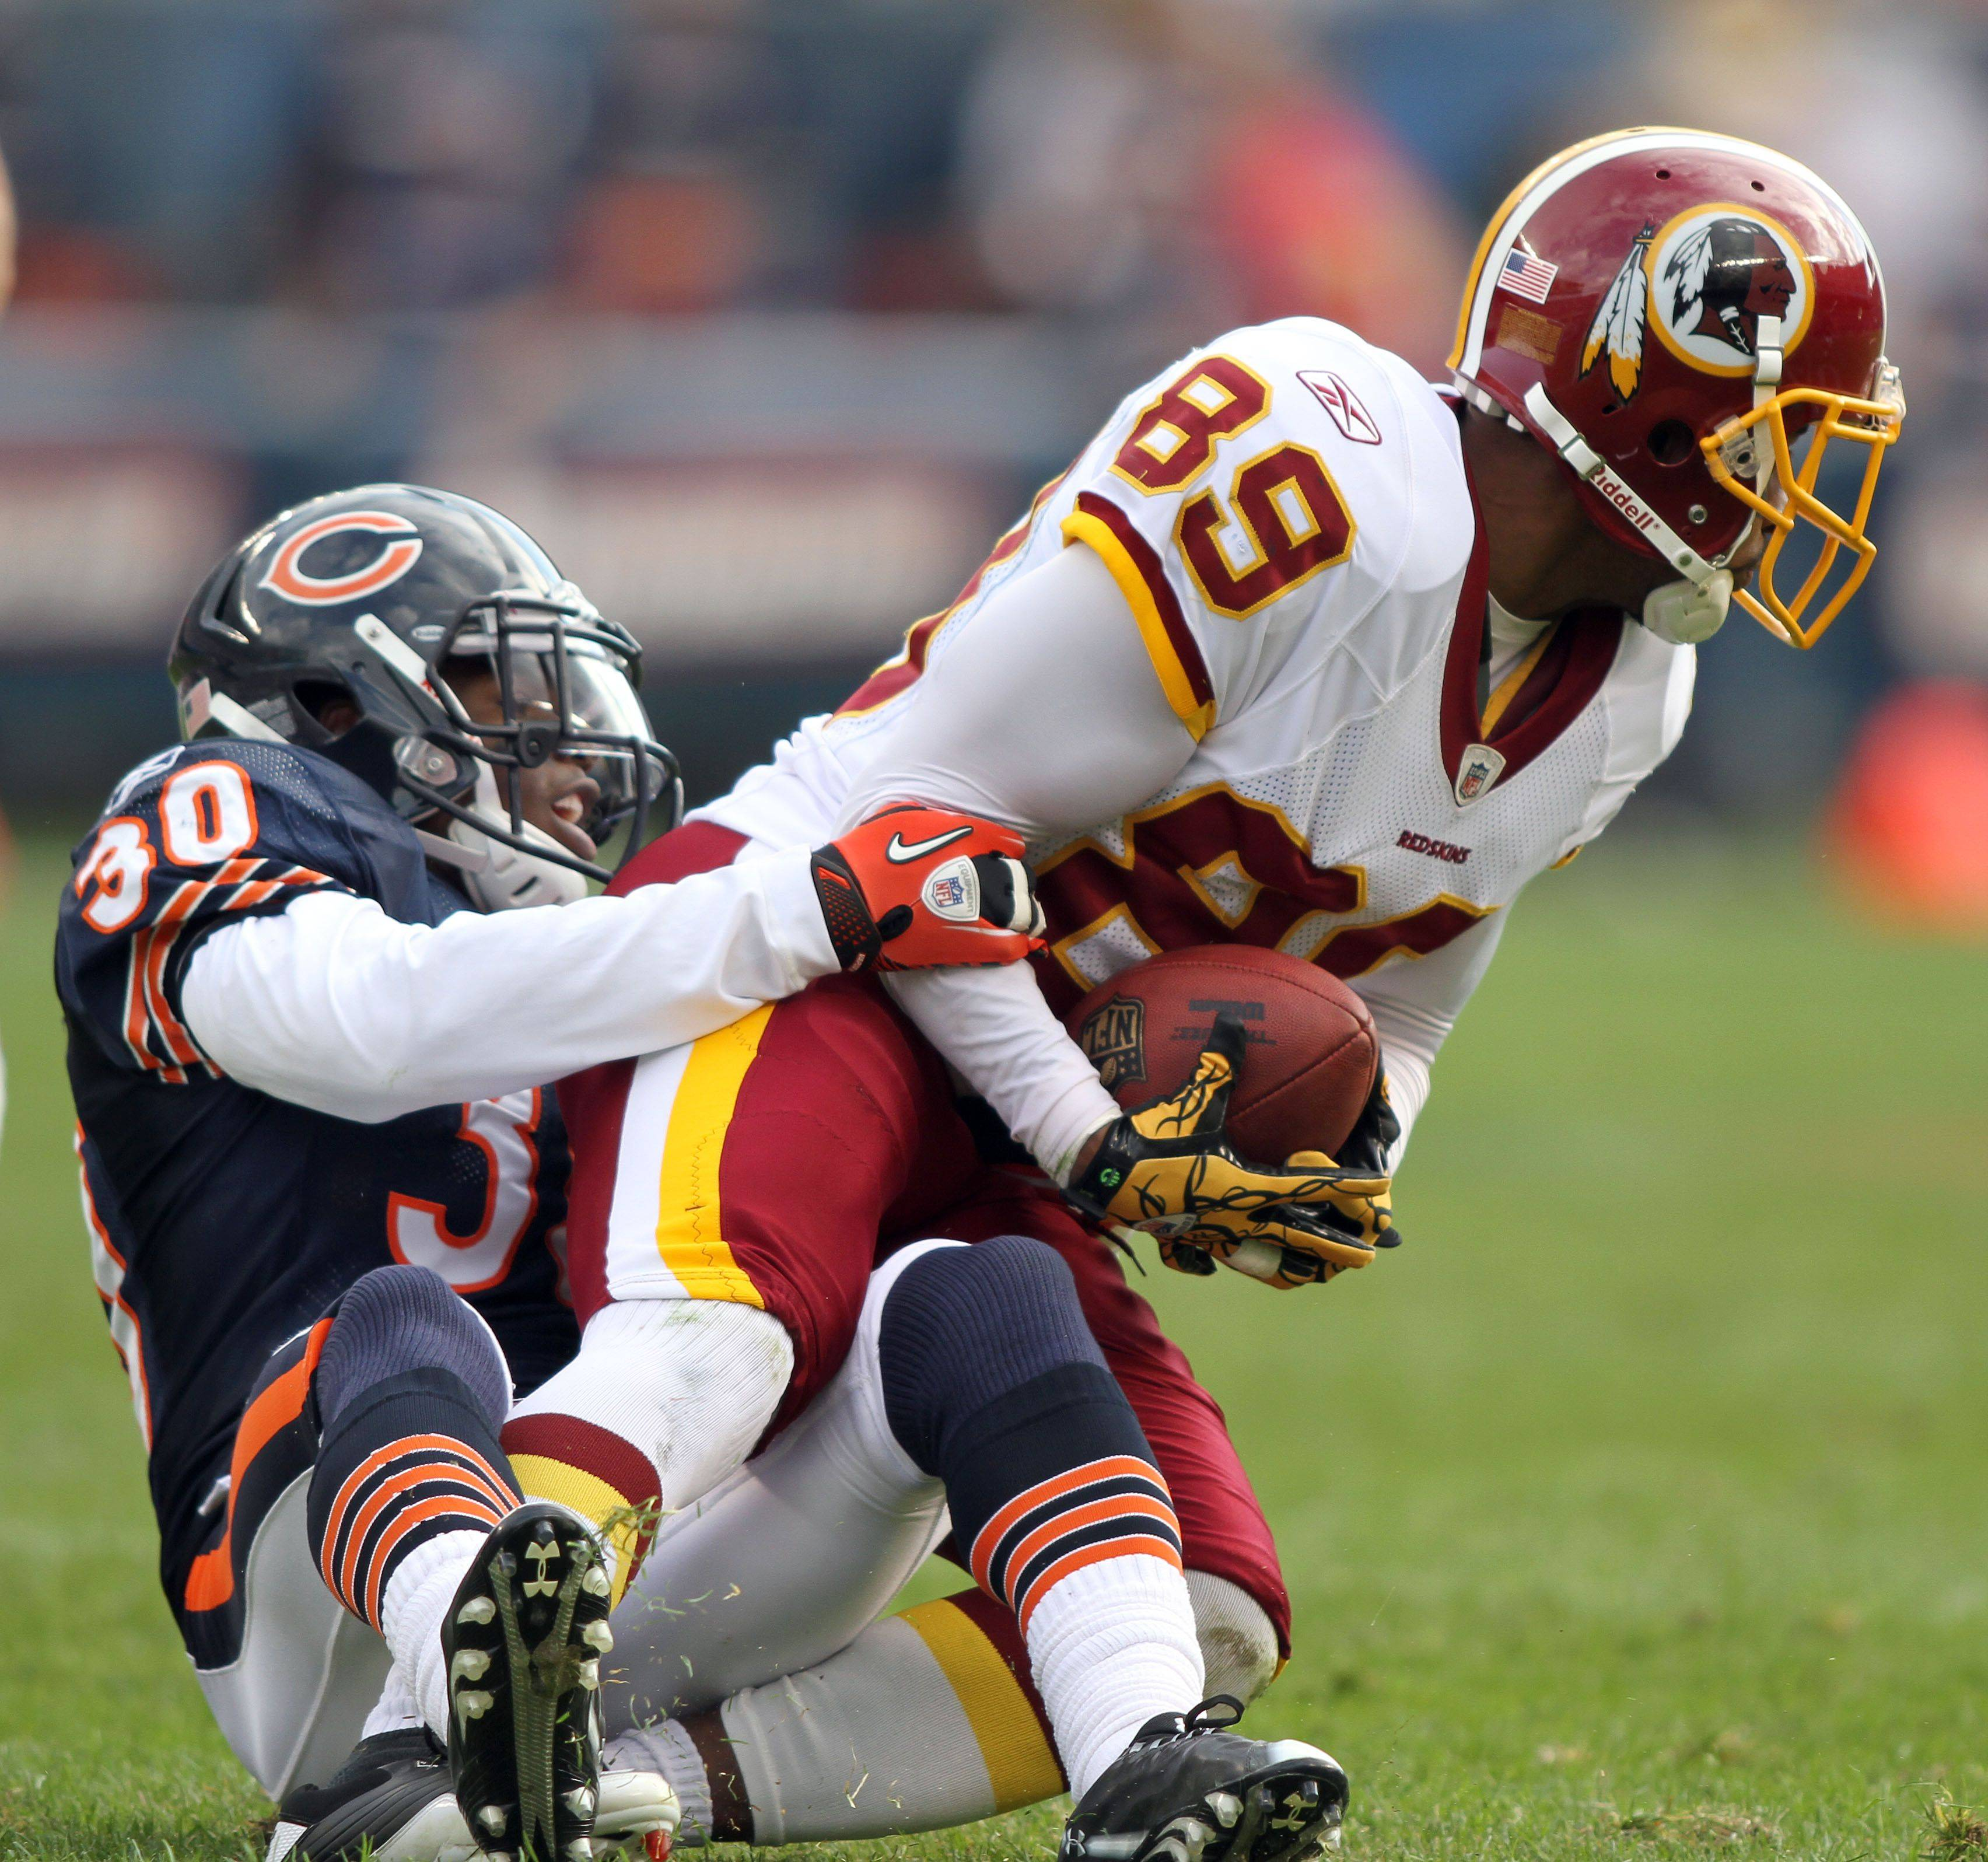 Chicago Bears cornerback D.J. Moore tackles Washington Redskins wide receiver Santana Moss during the Bears' 14-17 loss to the Redskins.